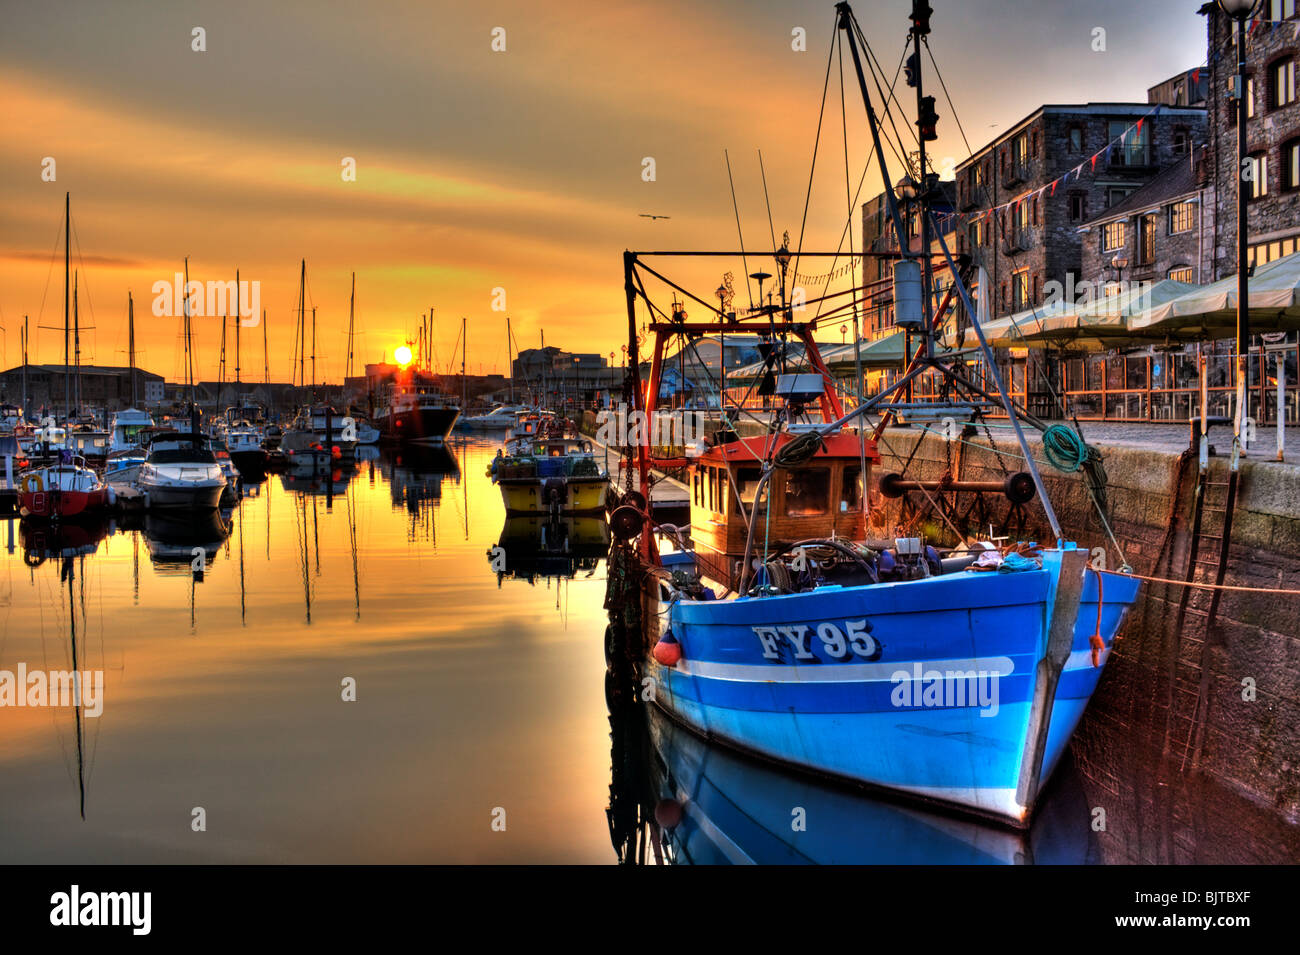 Early morning sunrise over The Barbican Plymouth UK - Stock Image